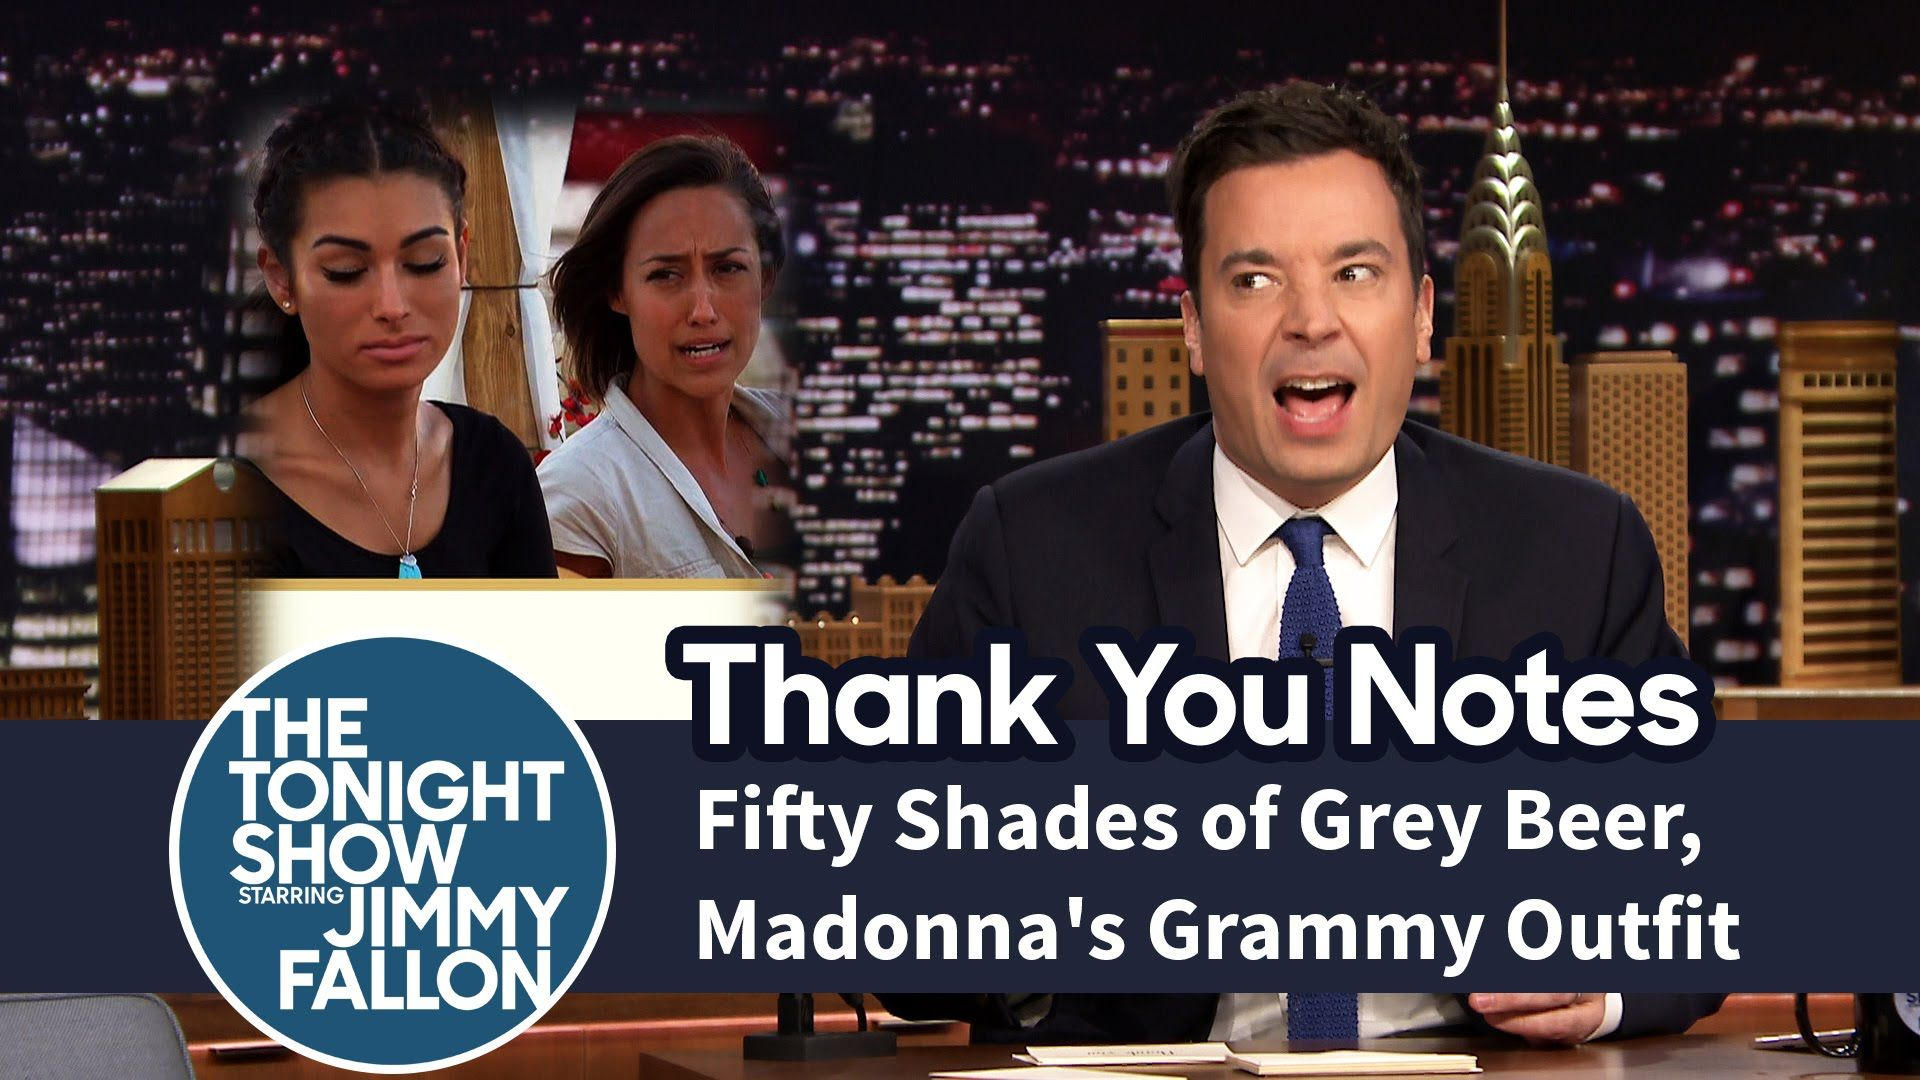 Thank You Notes: Fifty Shades of Grey Beer, Madonna's Grammy